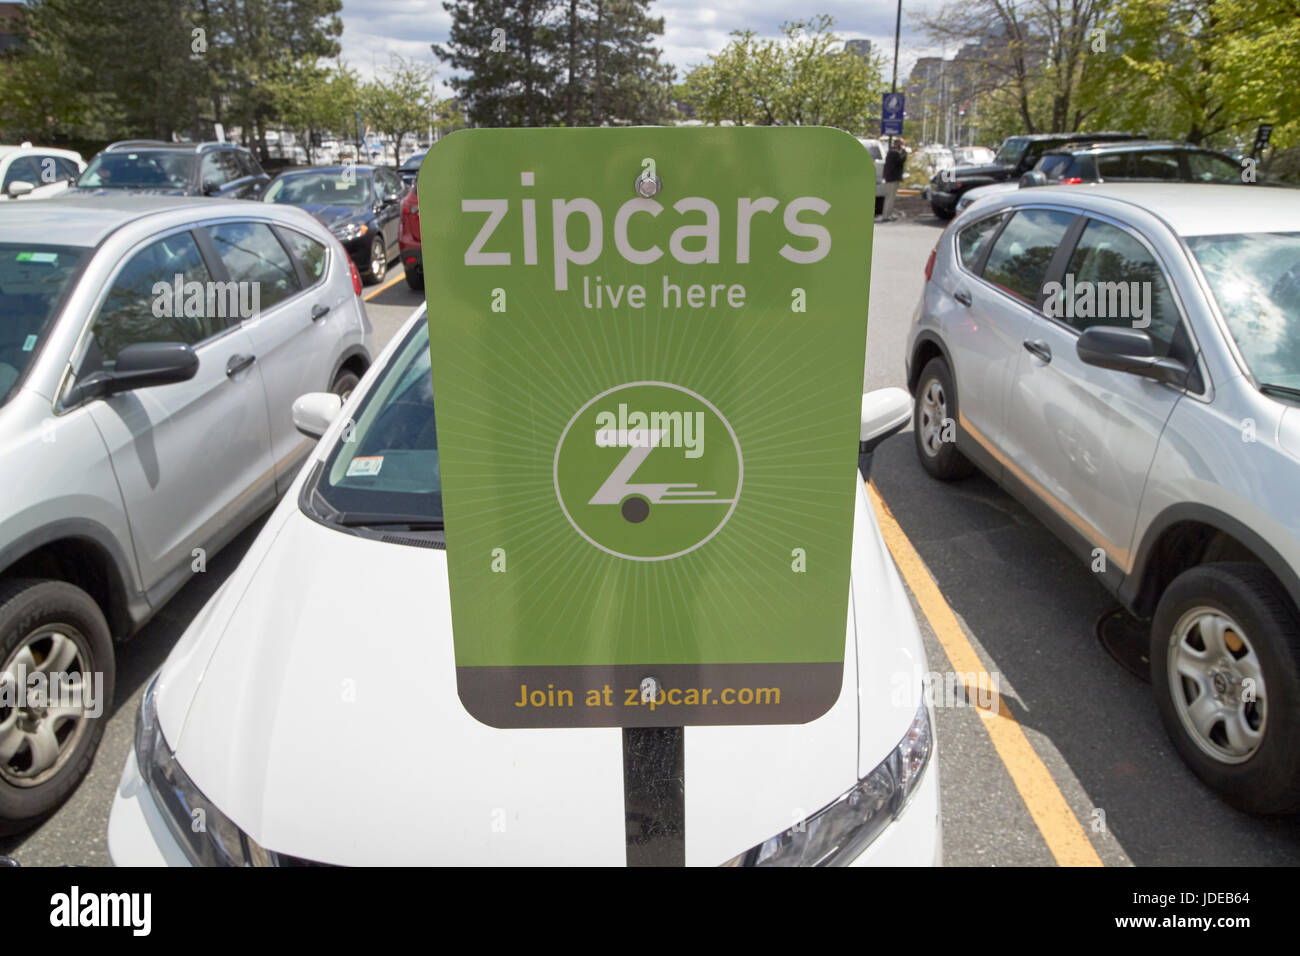 Zipcars Live Here Zipcar Car Sharing Parking Space In Boston Usa